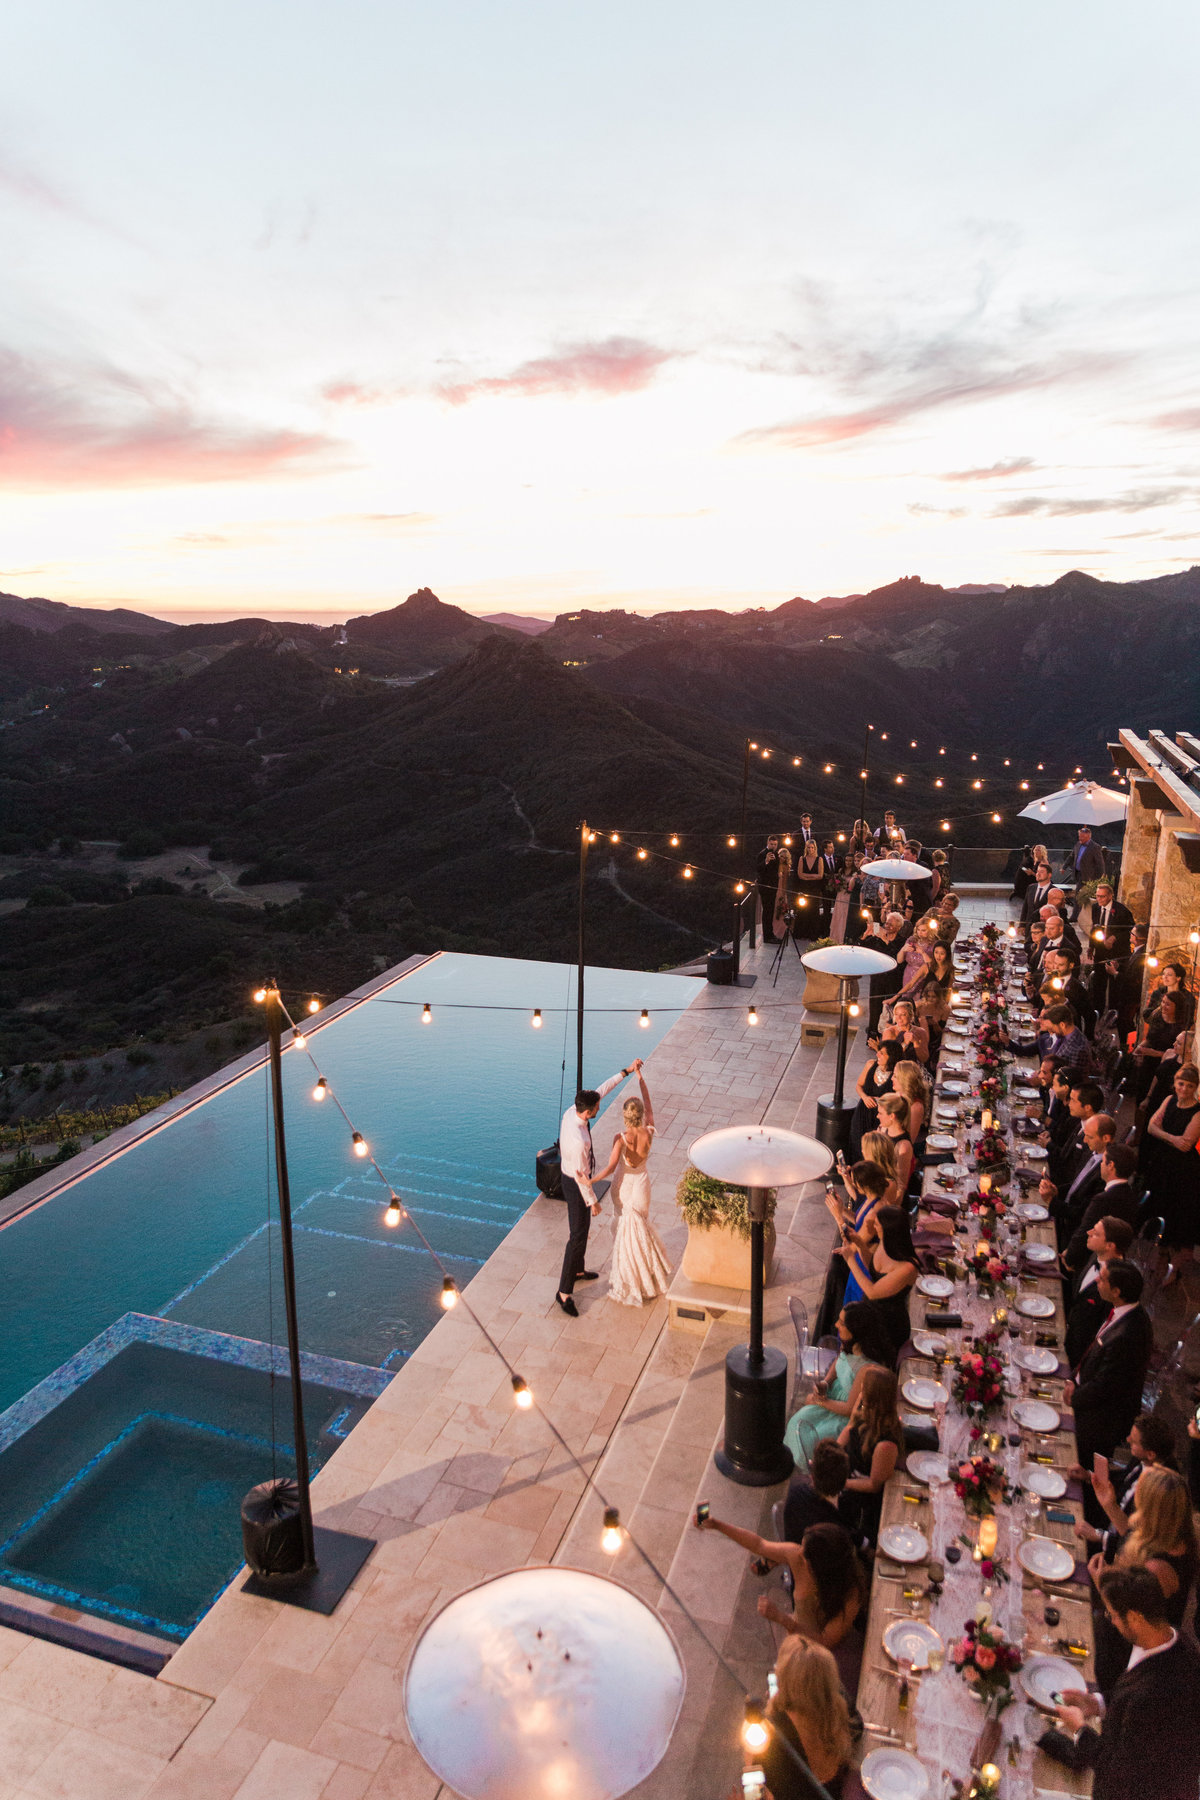 Malibu_Rocky_Oaks_Wedding_Inbal_Dror_Valorie_Darling_Photography - 137 of 160